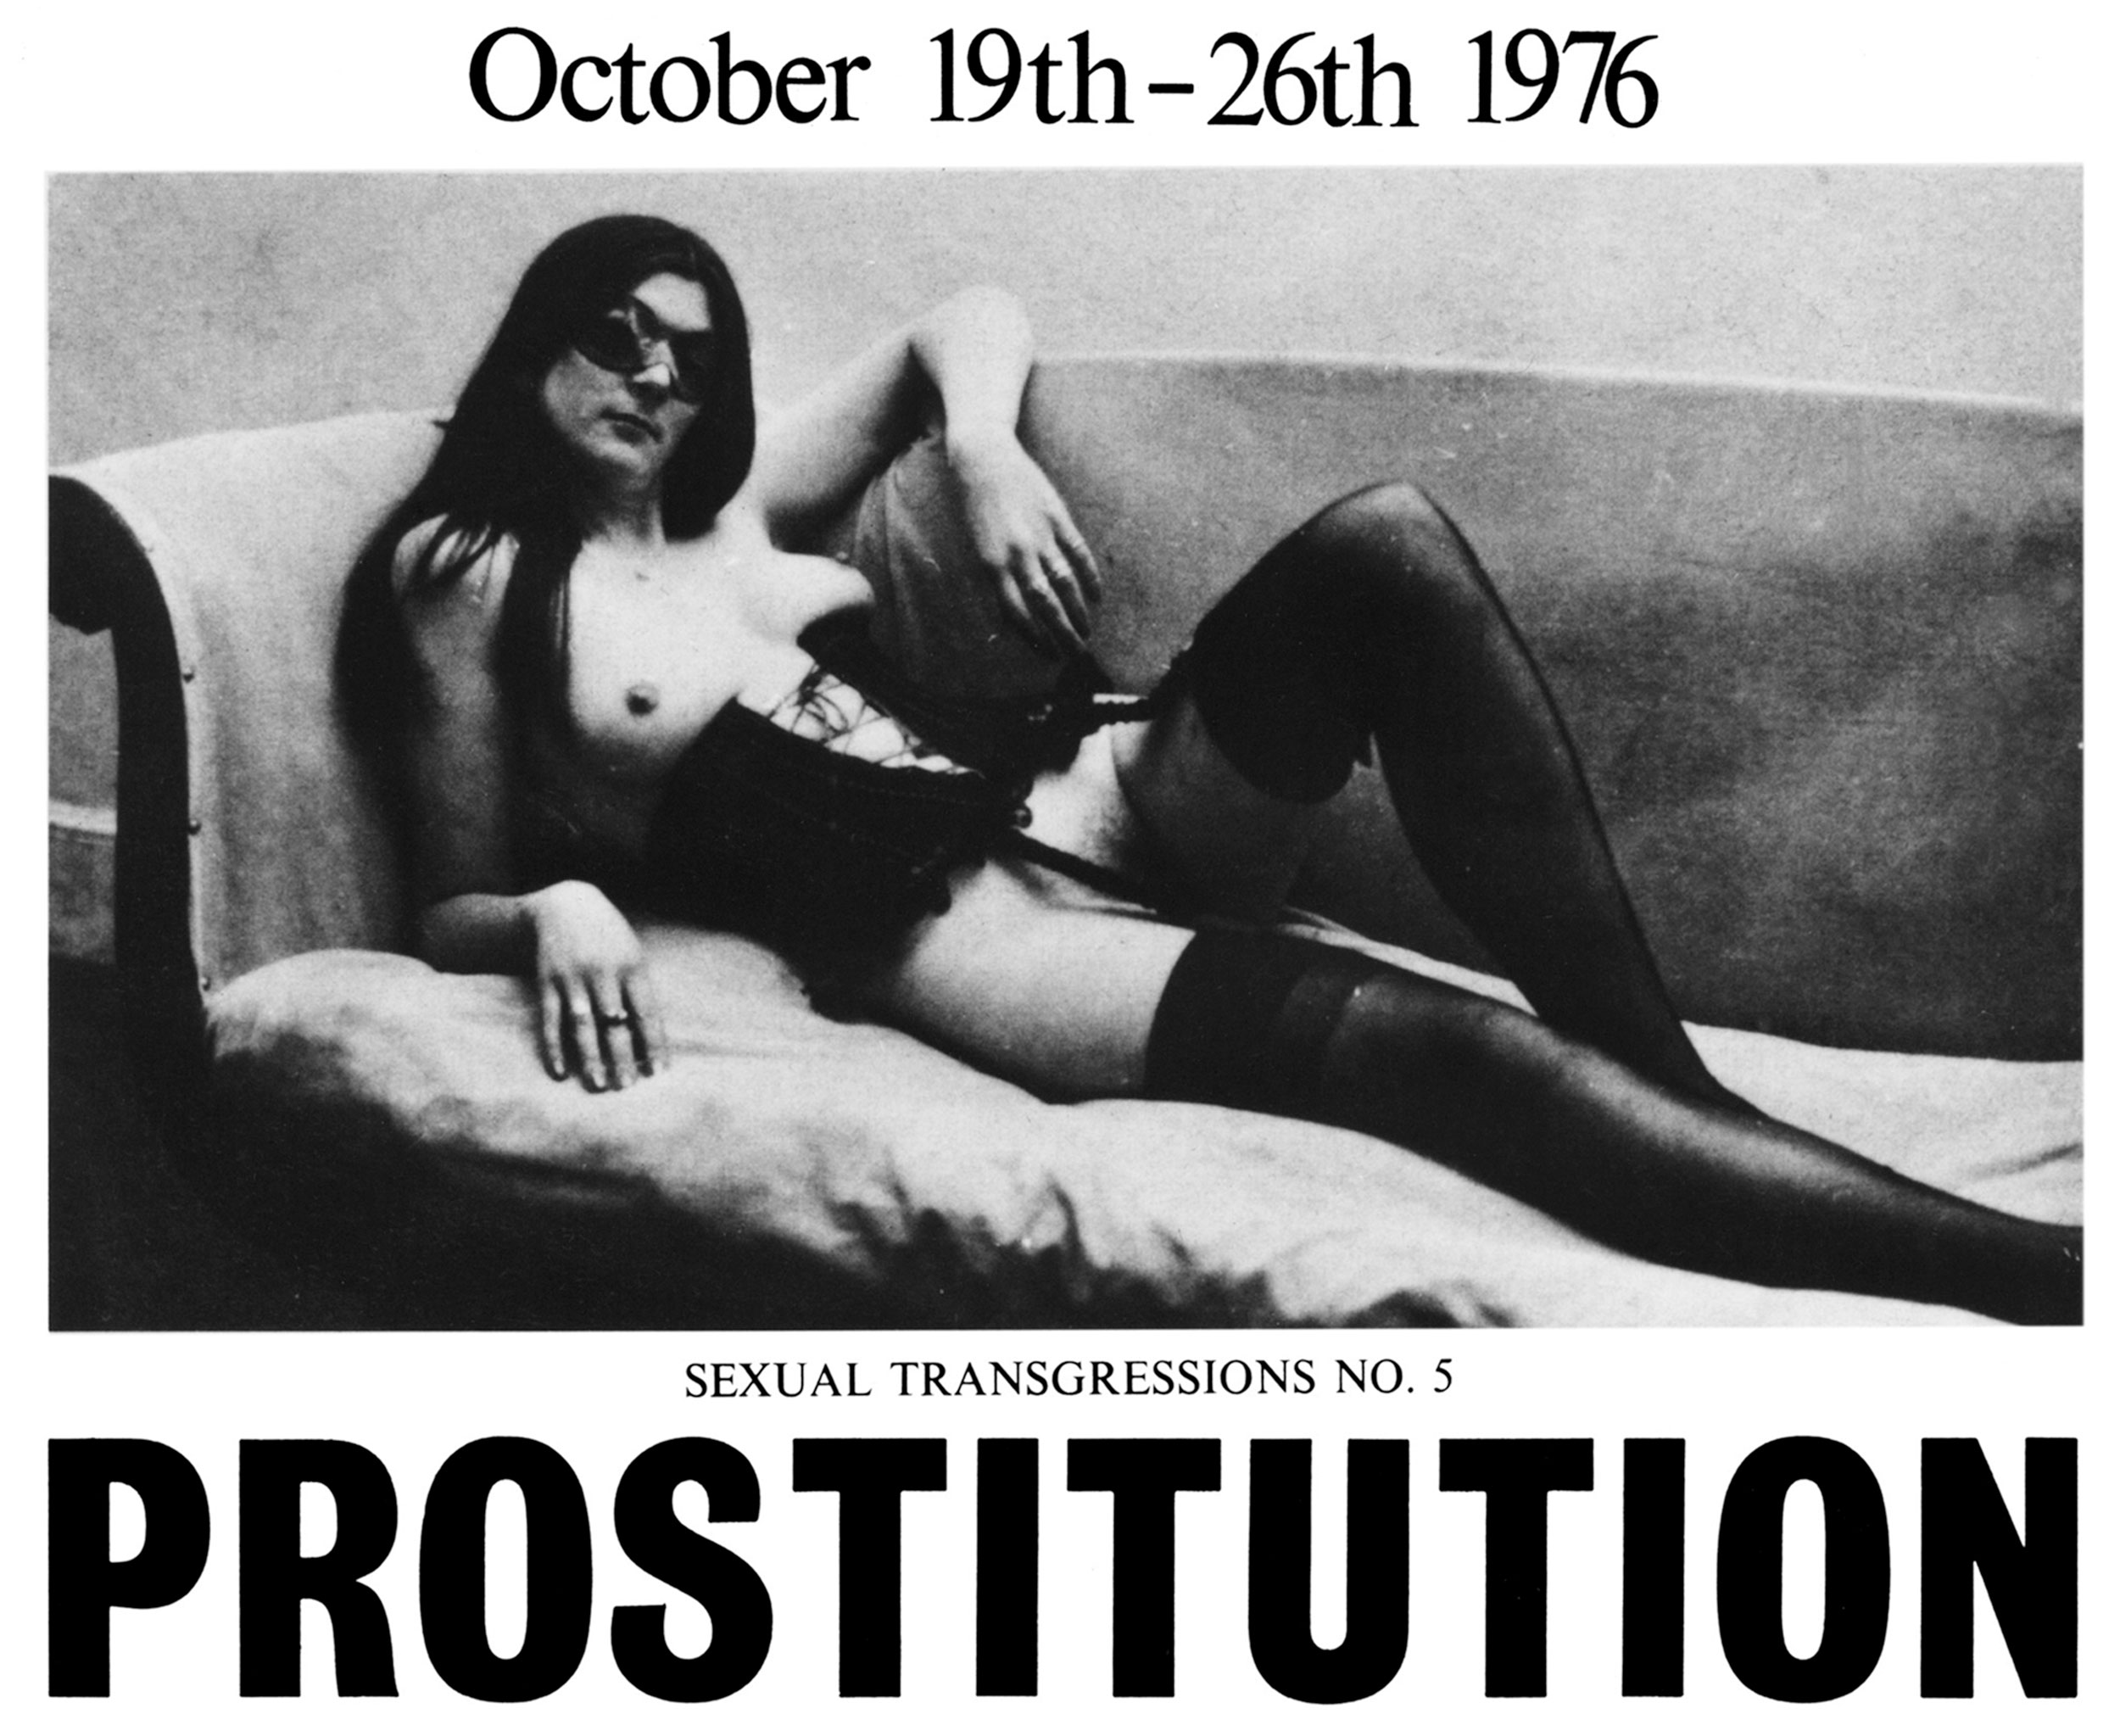 Exhibition poster for 'Prostitution' at London's ICA, 1976.